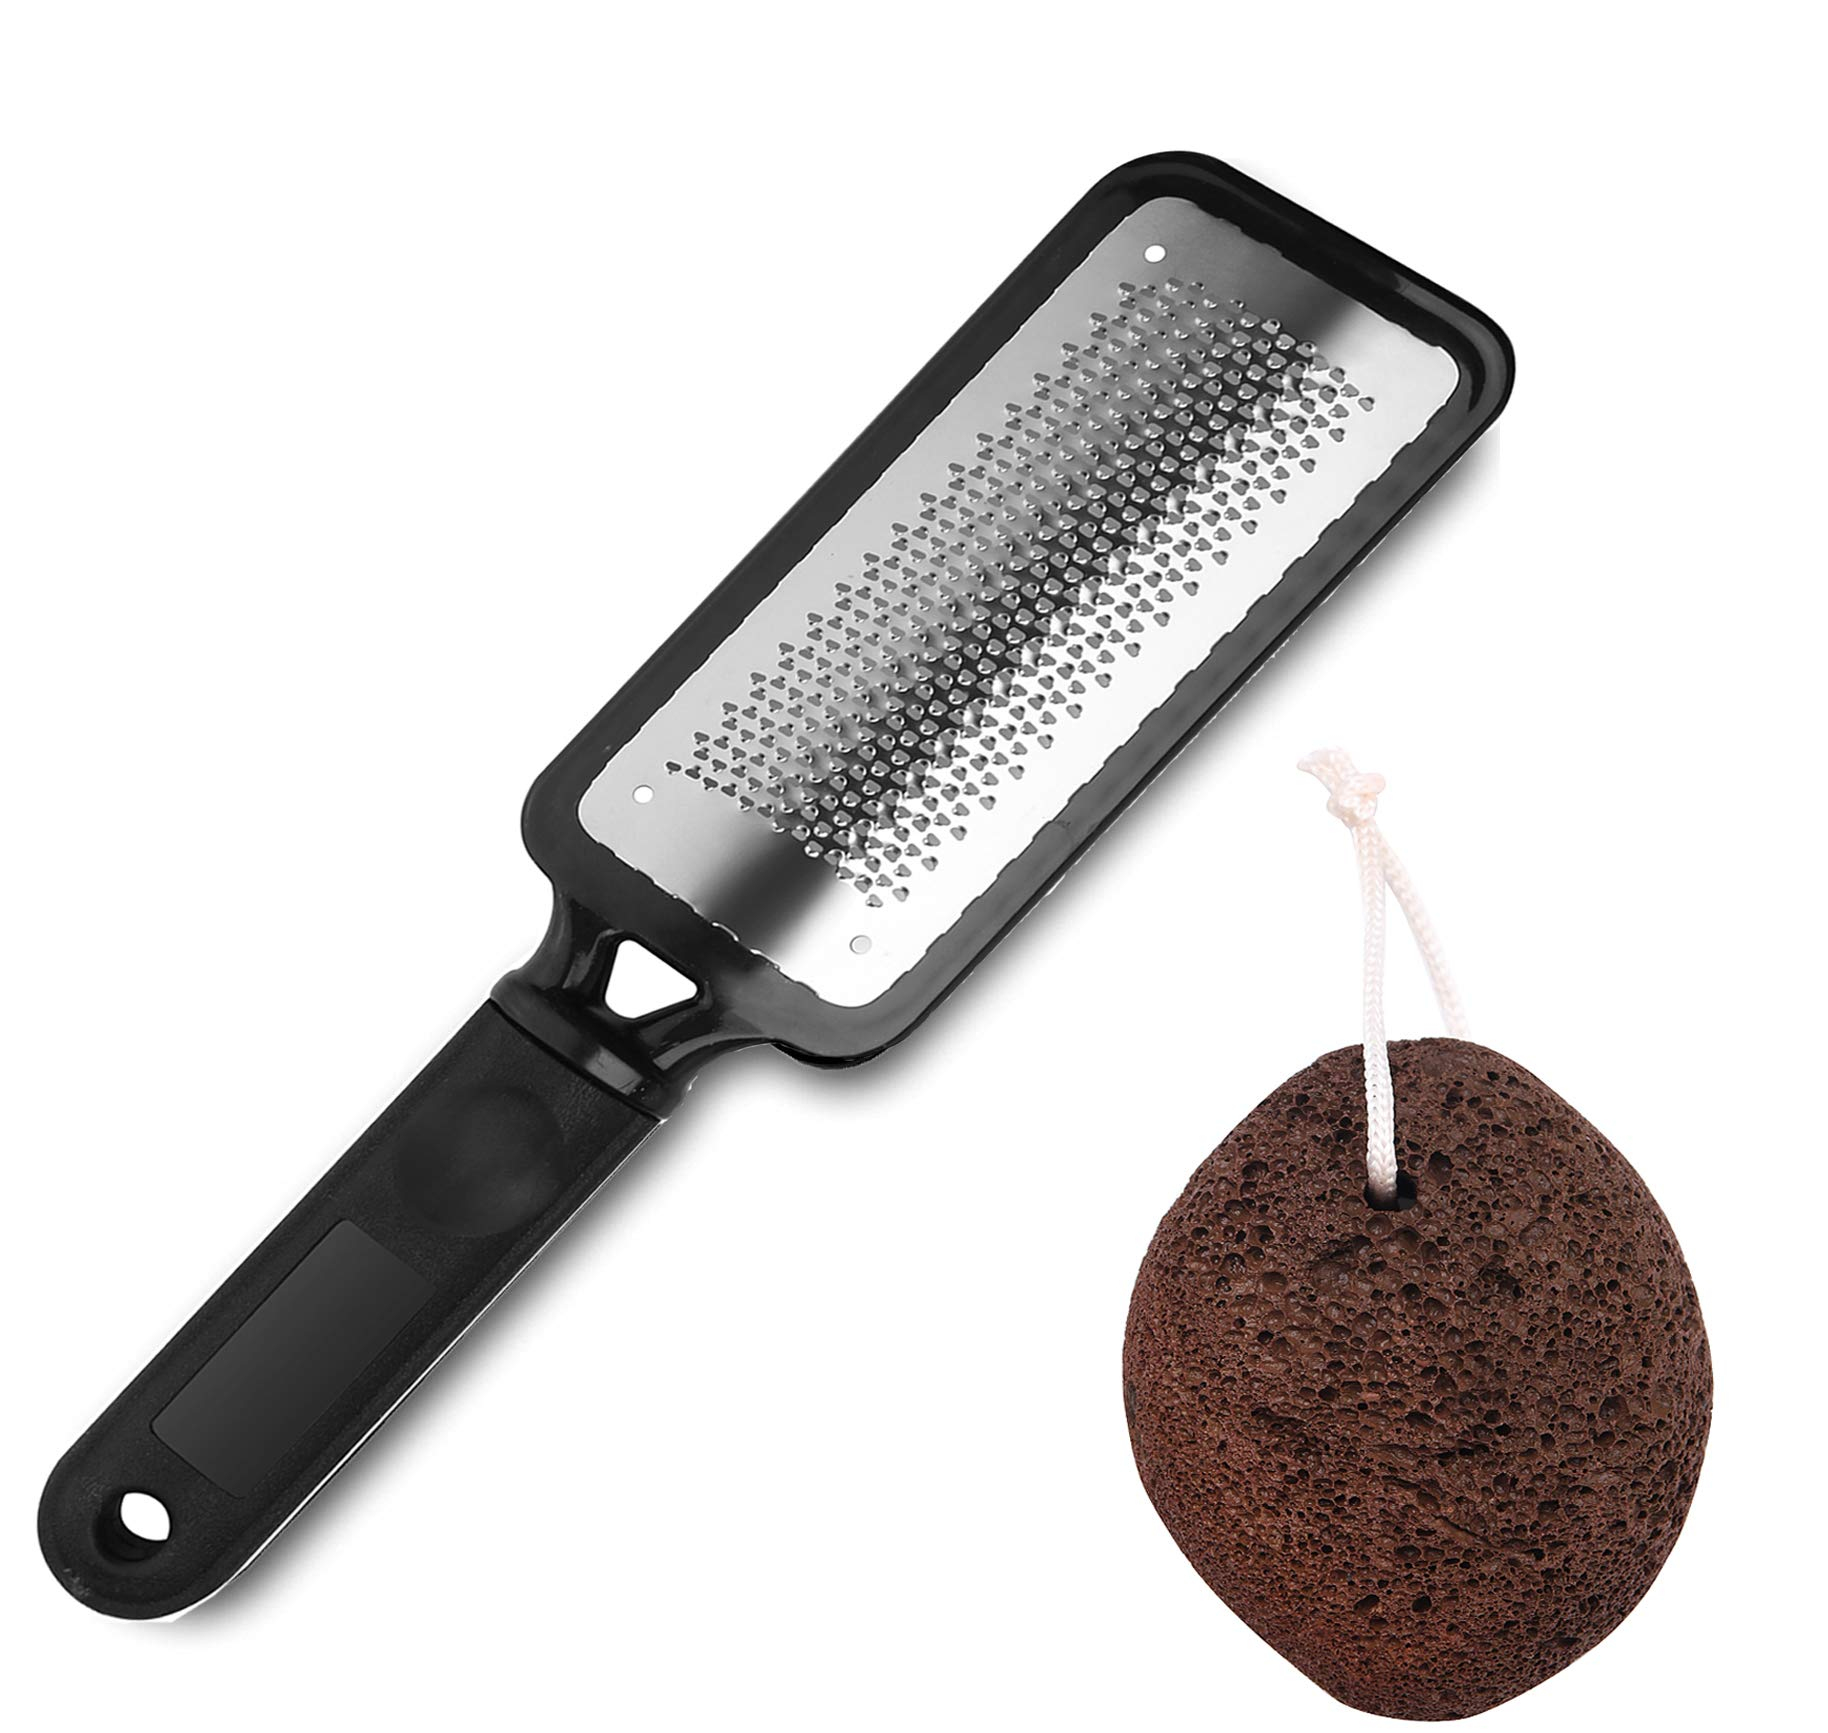 Colossal Foot Care Rasp and Pumice Stone Foot File, Pedicure Tools Trimmer for Callus Remover Foot Scrubber Care